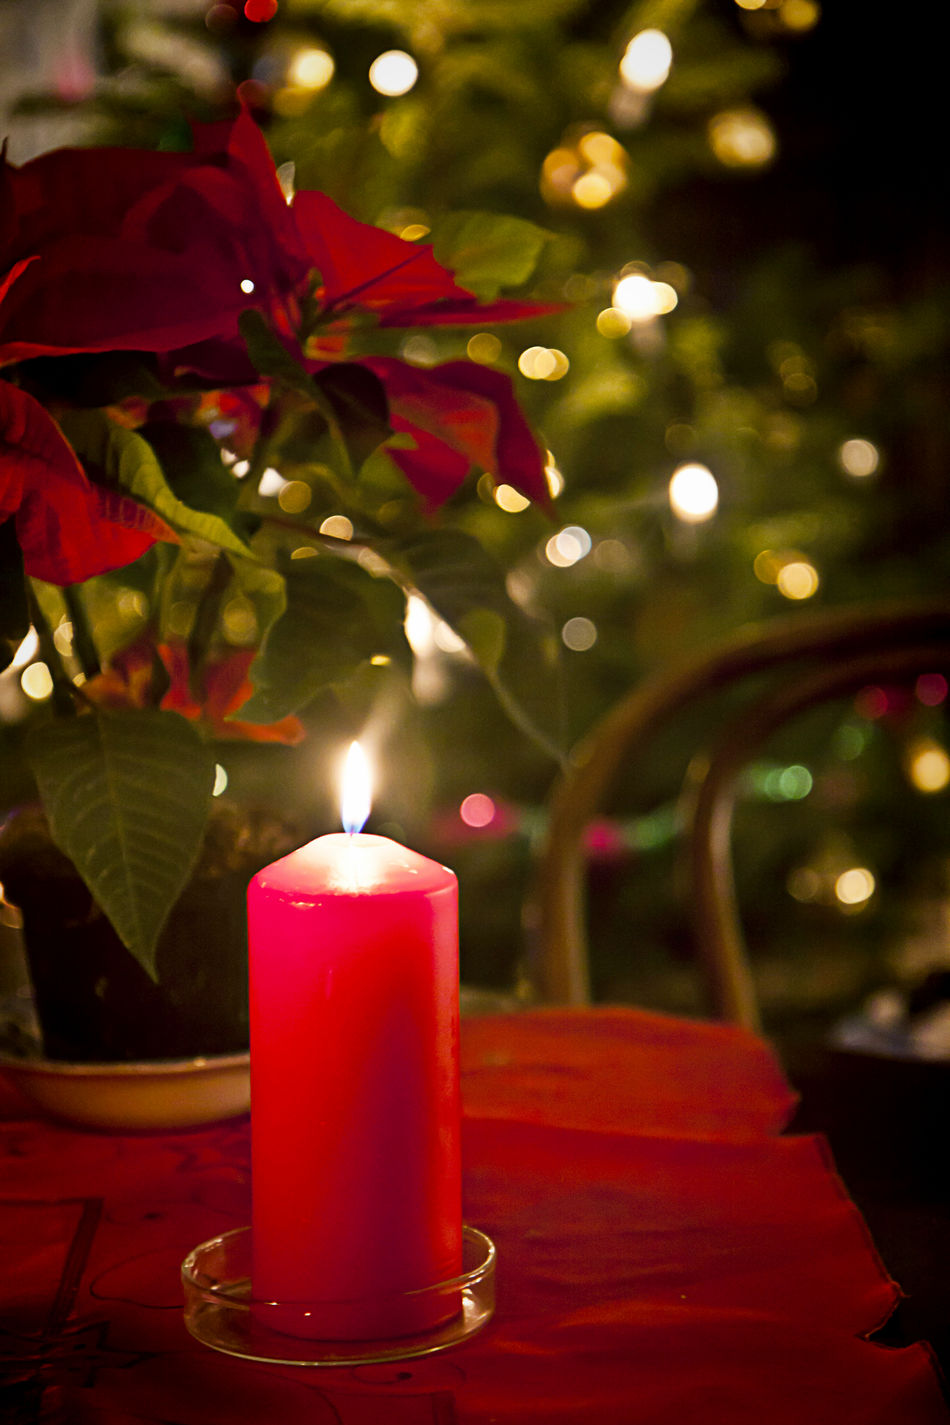 Christmas eve at home, red candle lit and blurred lights in background At Home Christmas Eve Festive Holiday Lights Poinsettia Season  Tradition Traditional